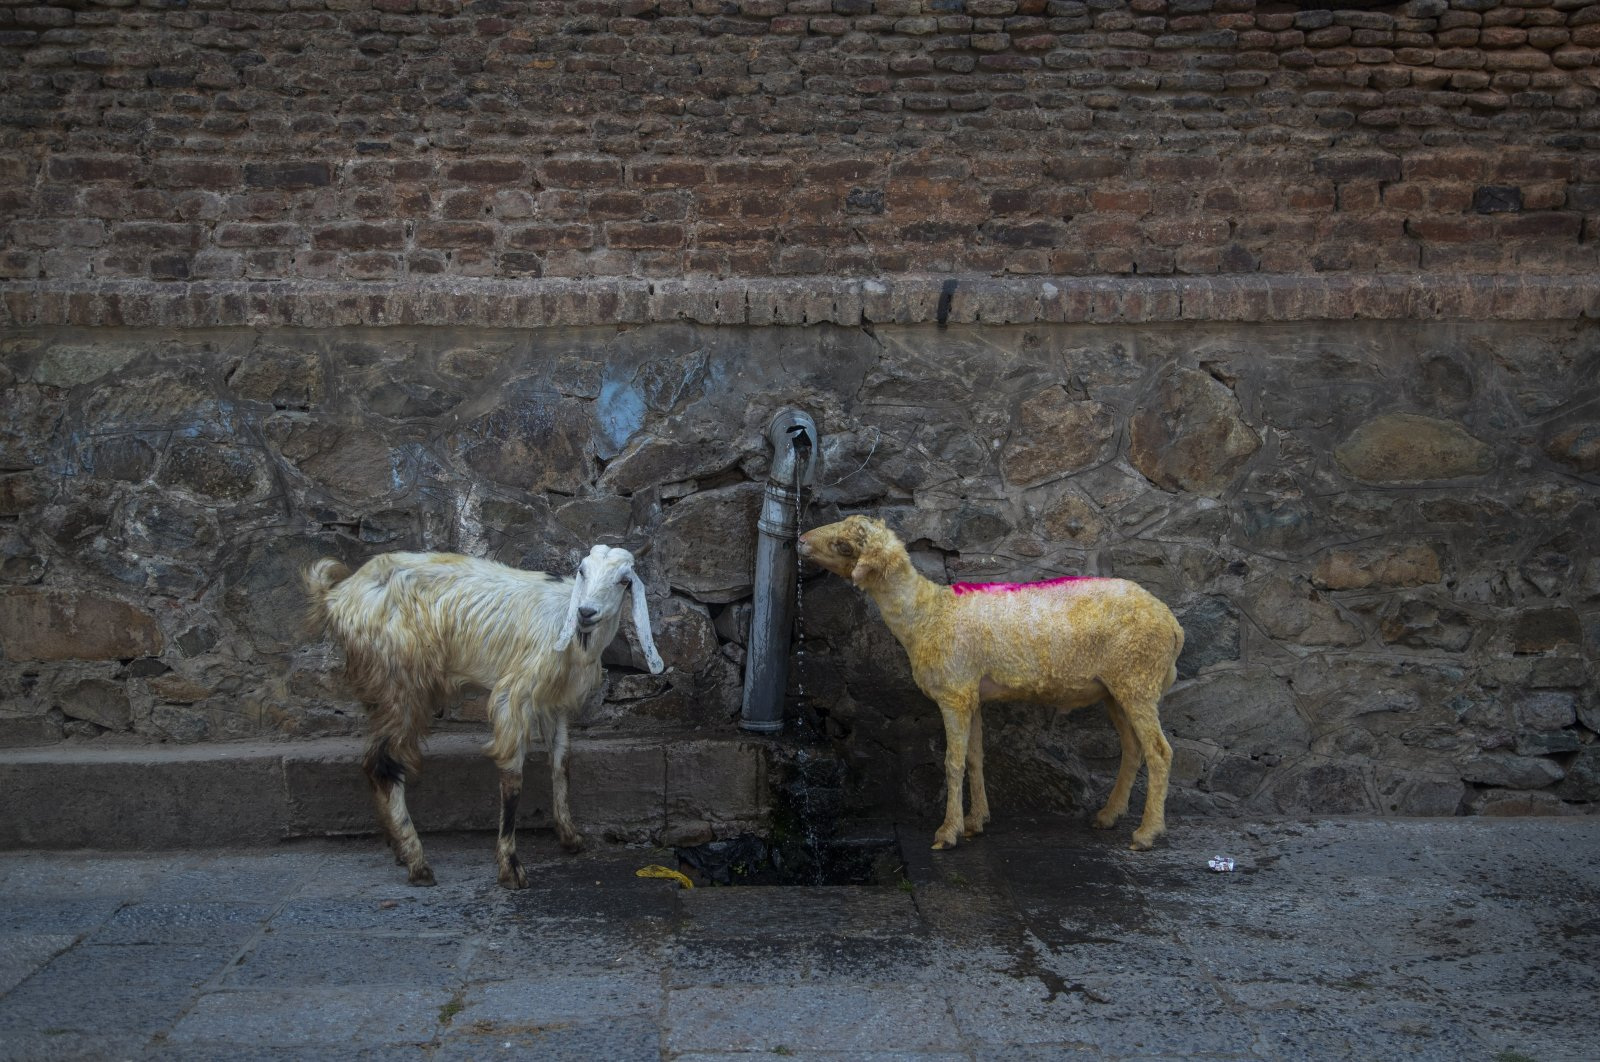 A sheep that is brought for sale ahead of the upcoming Muslim festival of Eid al-Adha drinks water in Srinagar, Indian-controlled Kashmir, India, July 11, 2021. (AP Photo)